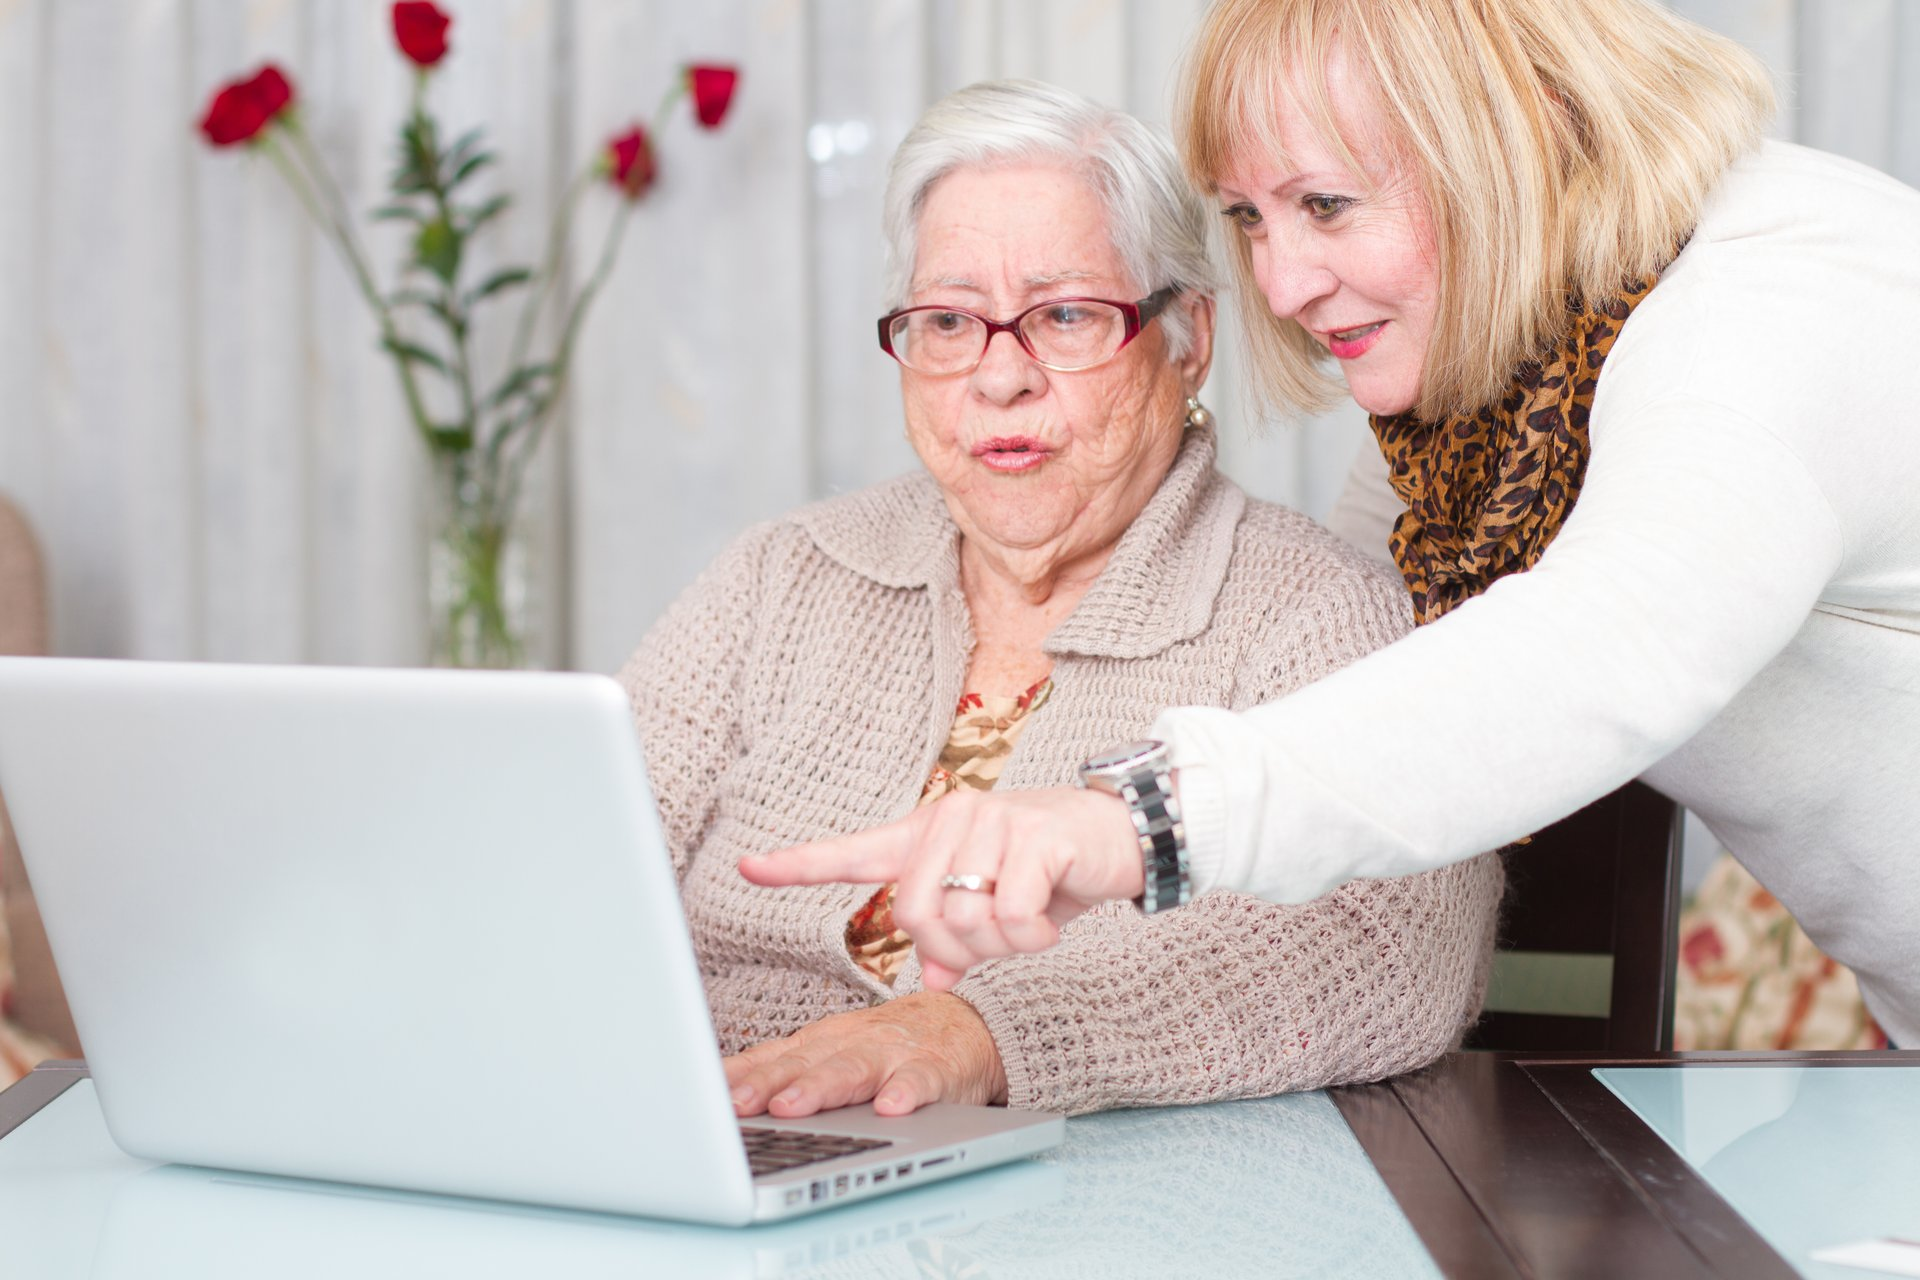 Daughter looking at computer over the shoulder of her elderly mother.